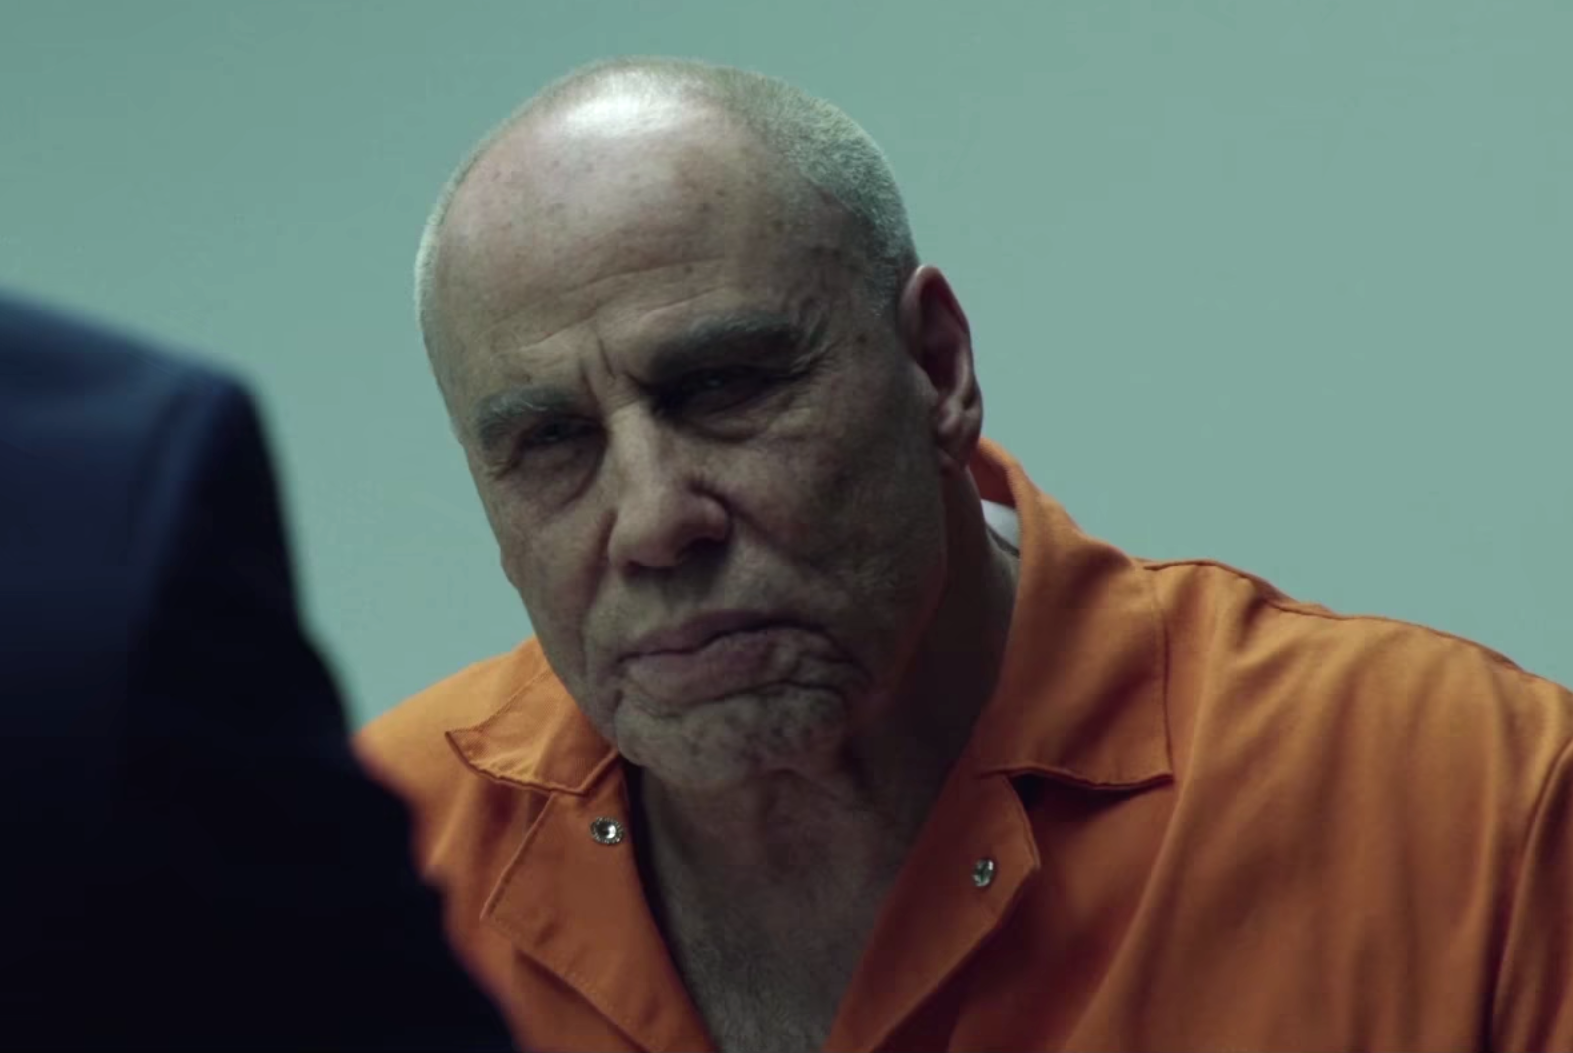 John Travolta's 'Gotti' looks like your next must-watch gangster film